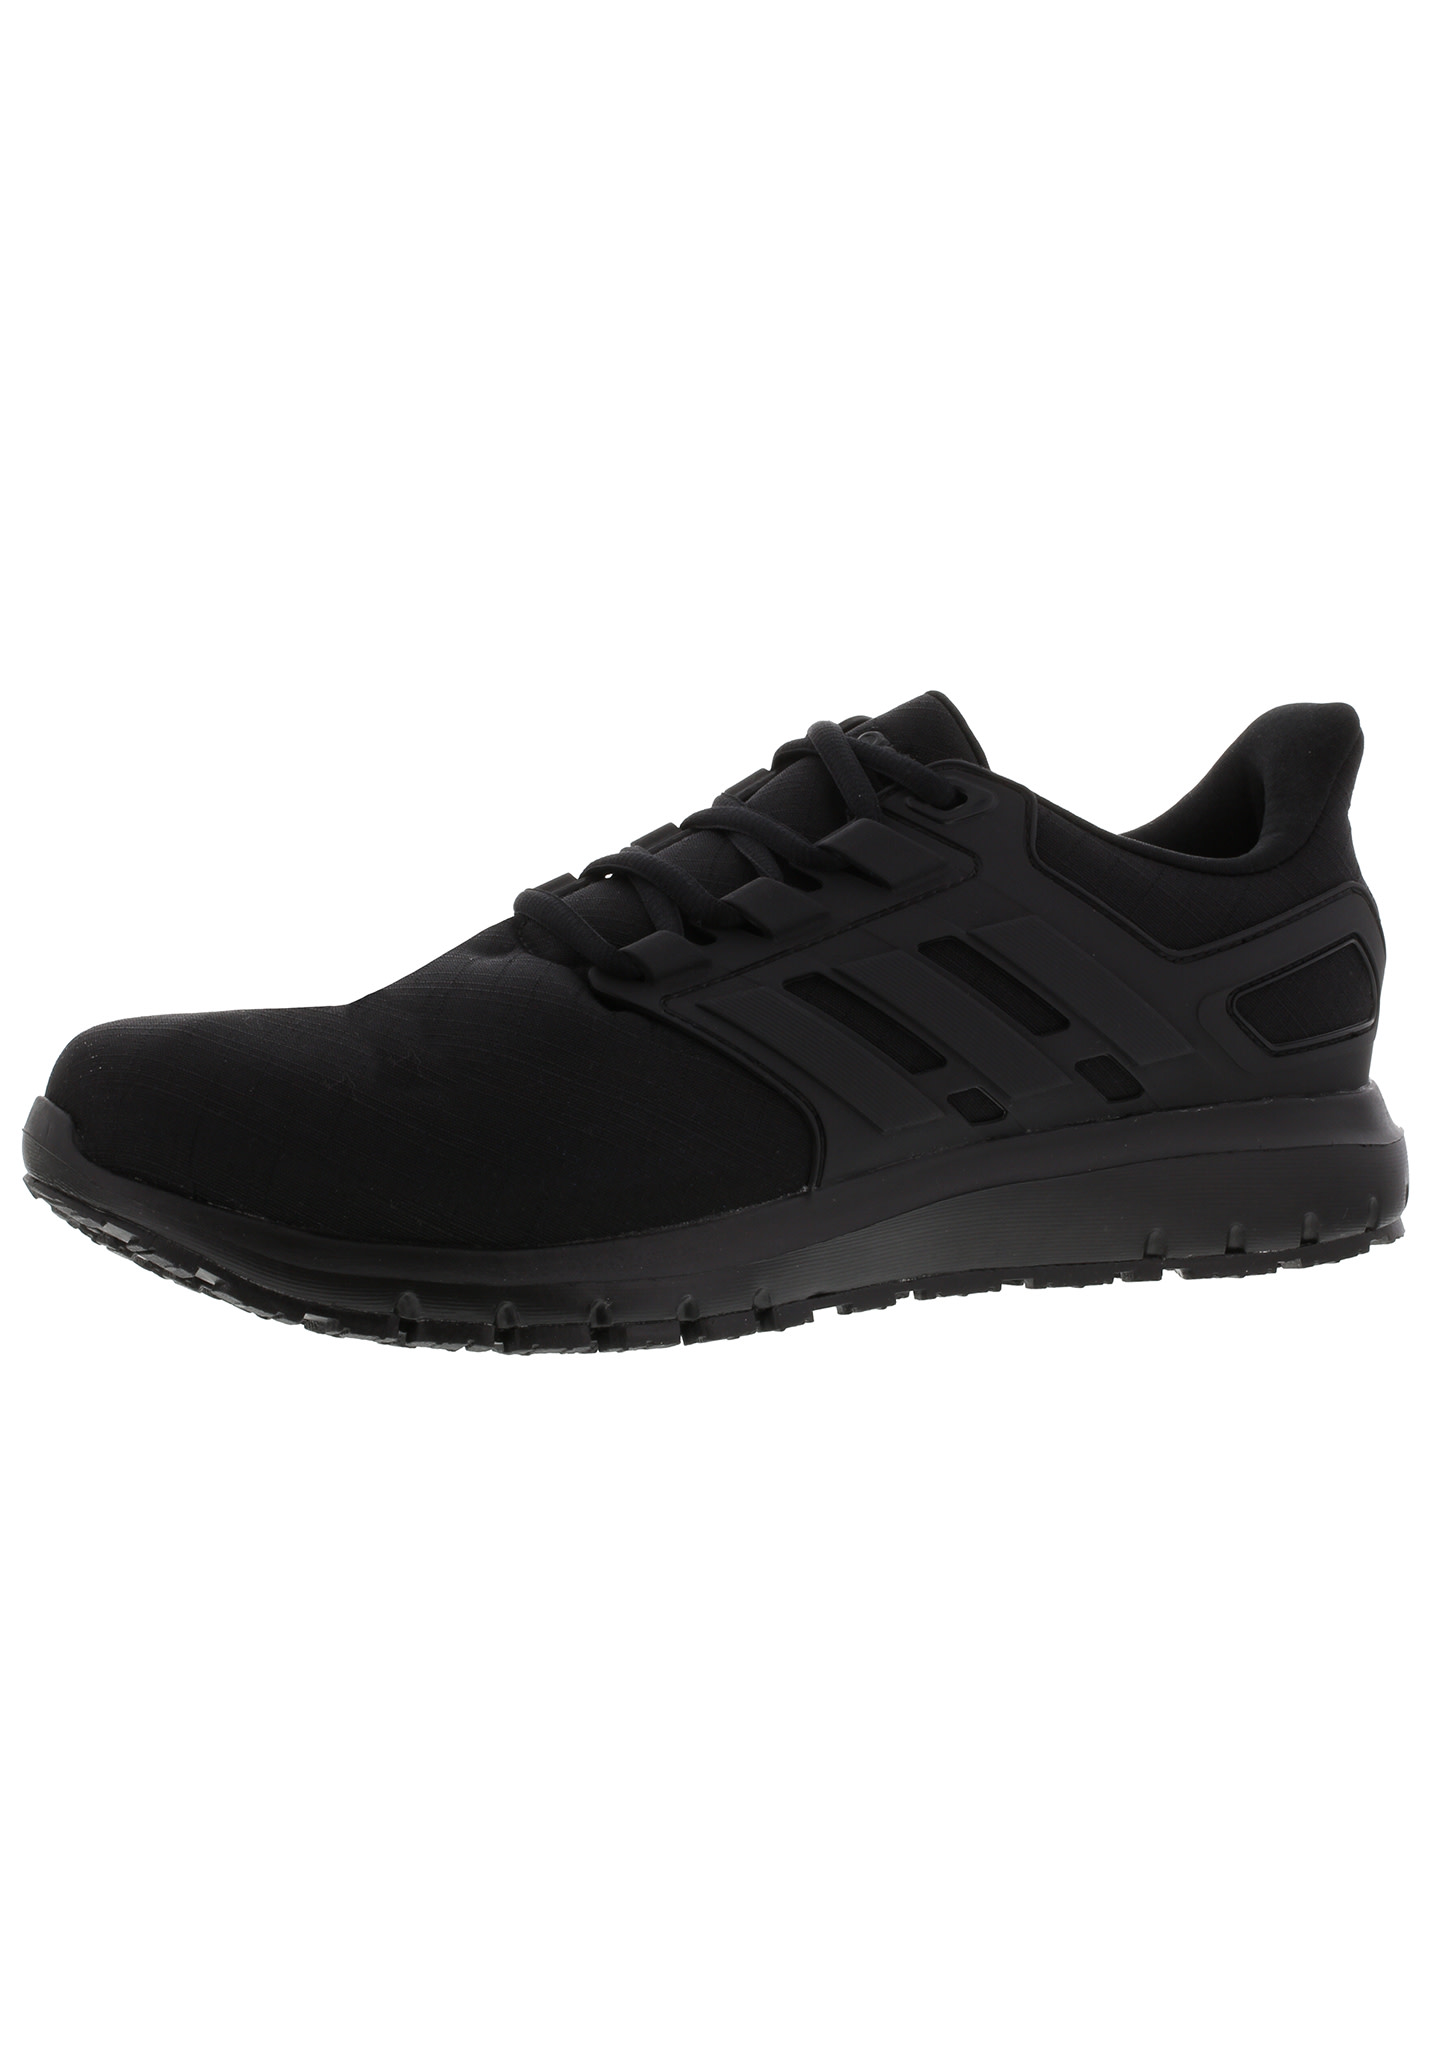 1e63a8282 adidas Energy Cloud 2 - Running shoes for Men - Black | 21RUN